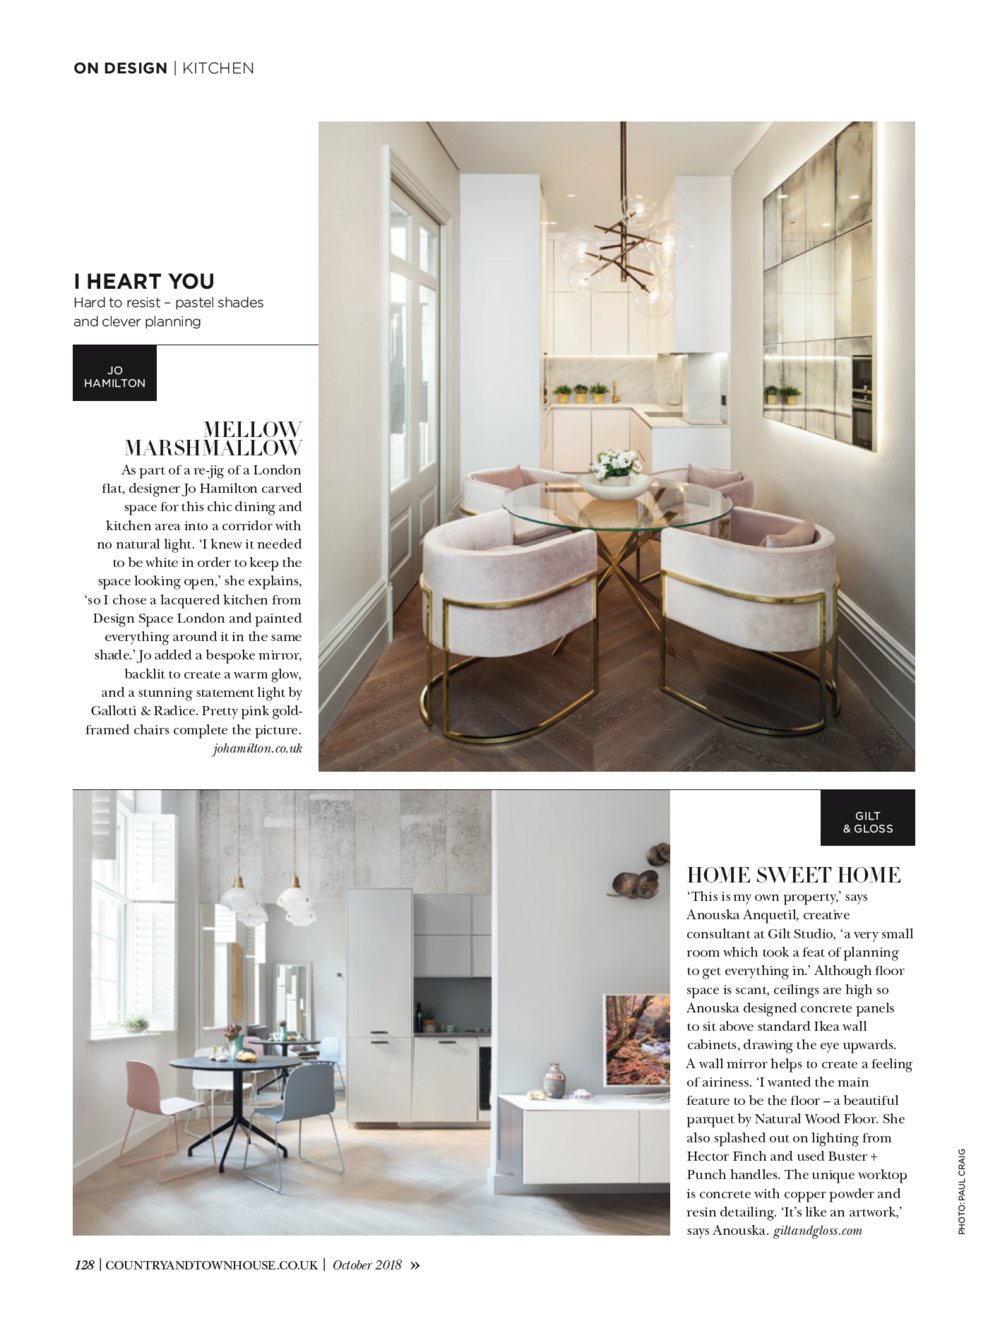 Luxury interior designer Jo Hamilton feature Country and Town House magazine October 2018